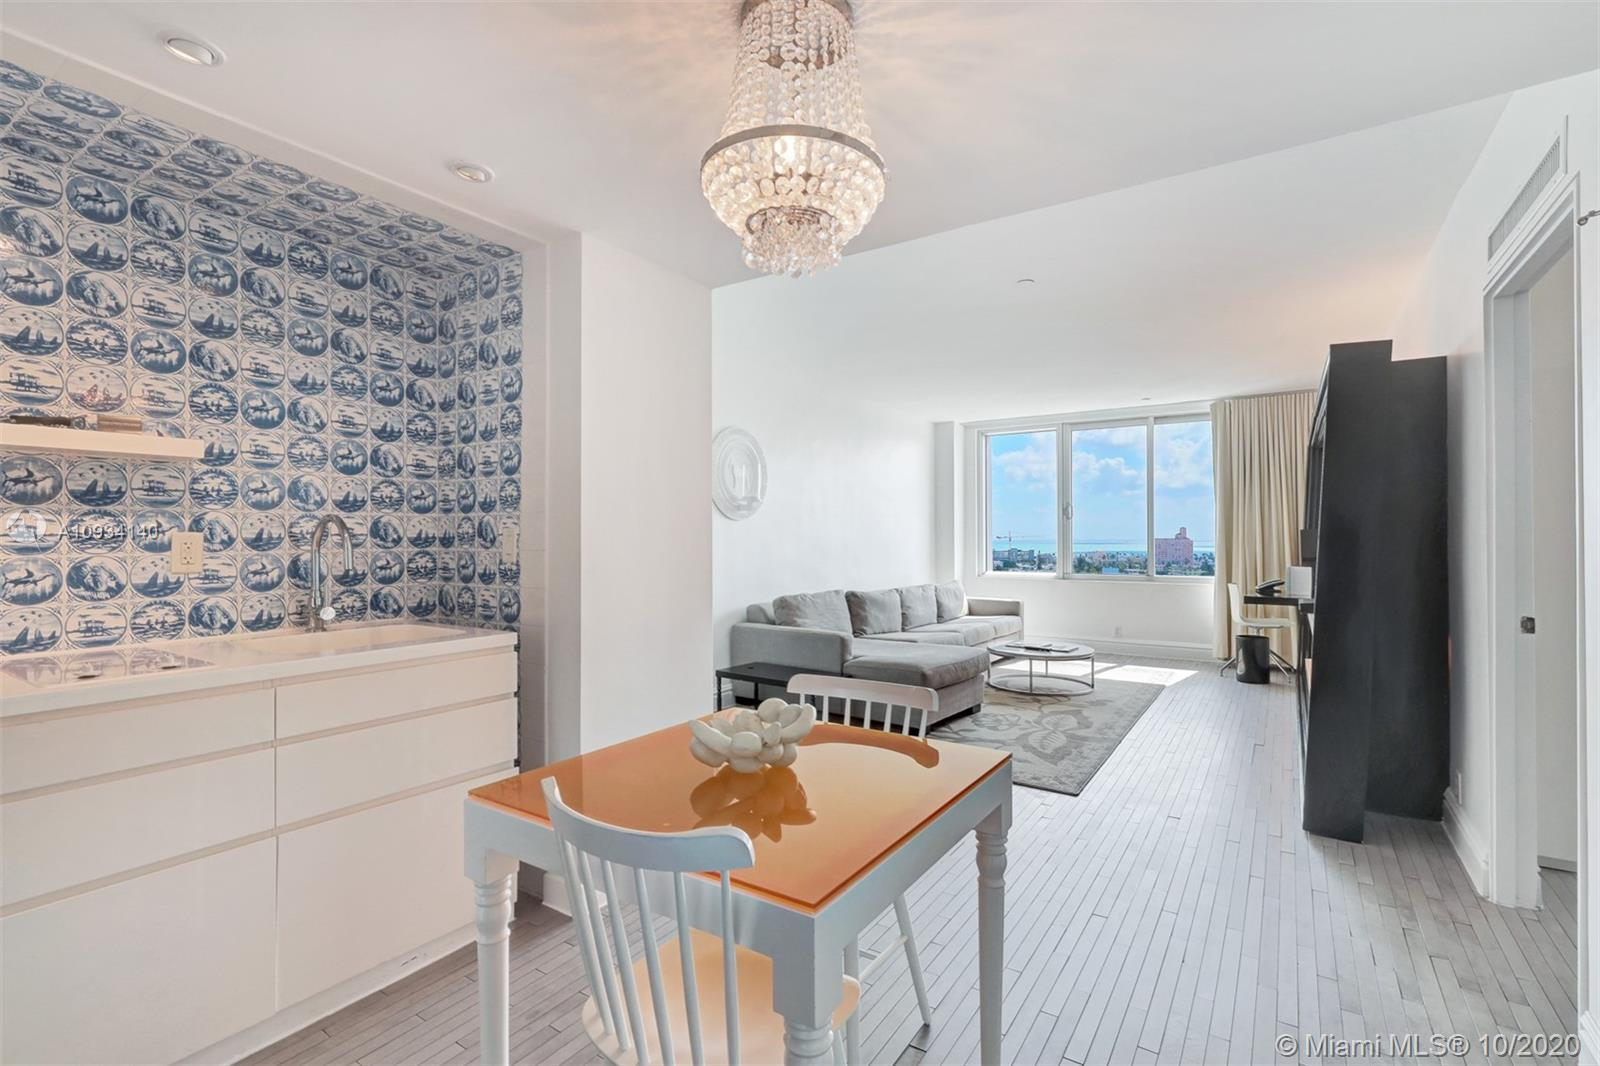 Tremendous views of the city and ocean from this Penthouse Unit with 1 Bed 1 Bath at the newly renovated MONDRIAN located in the heart of SoBe.  The unit is NOT in the hotel program and can be self managed. This building just completed a $20mil property wide renovation including 2 restaurants, spectacular lobby bar, refreshed Spa and Fitness Centers, new Beach Club, new pool areas and a private marina with jet ski rentals and more.  Perfectly furnished, and with the bath updated, its ready to move in or ready to rent out. SELLER HAS PAID ALL ASSESSMENTS.  Enjoy on-site concierge, 24-hr room service, housekeeping service, and 24/7 security. Unit has 1 valet parking space. Fantastic restaurants, shopping, sports venues and entertainment are just minutes away!